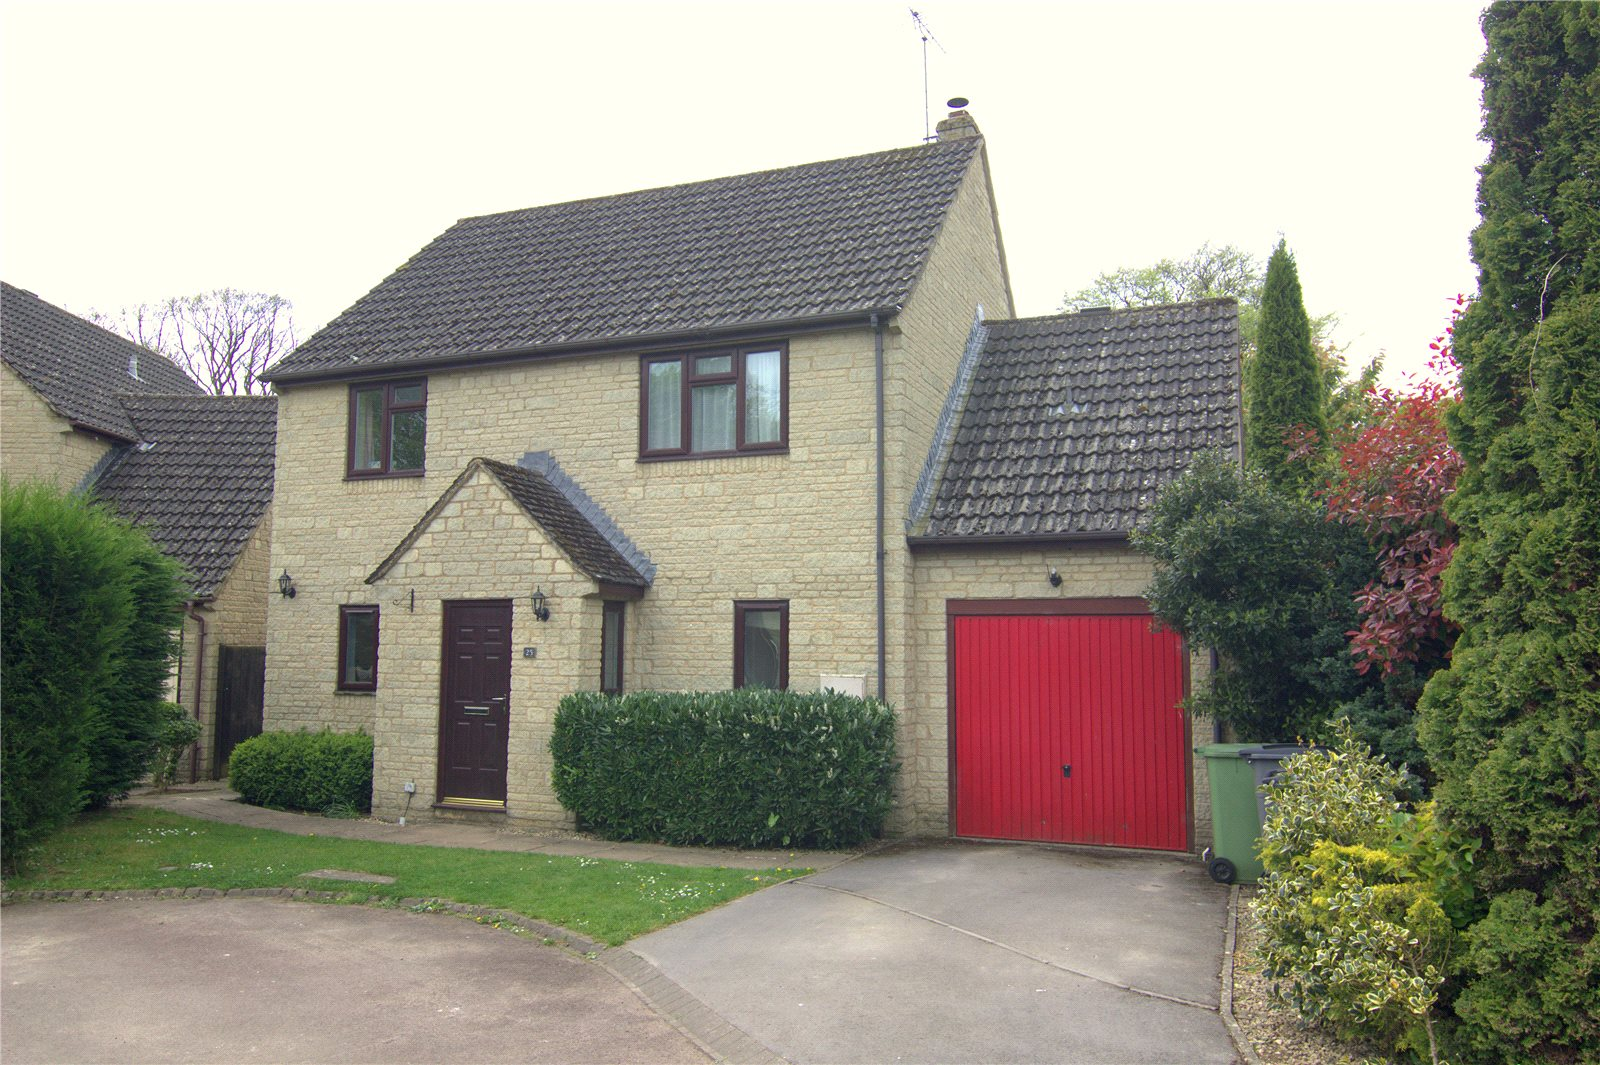 4 Bedrooms Detached House for sale in May Tree Close Coates Cirencester GL7